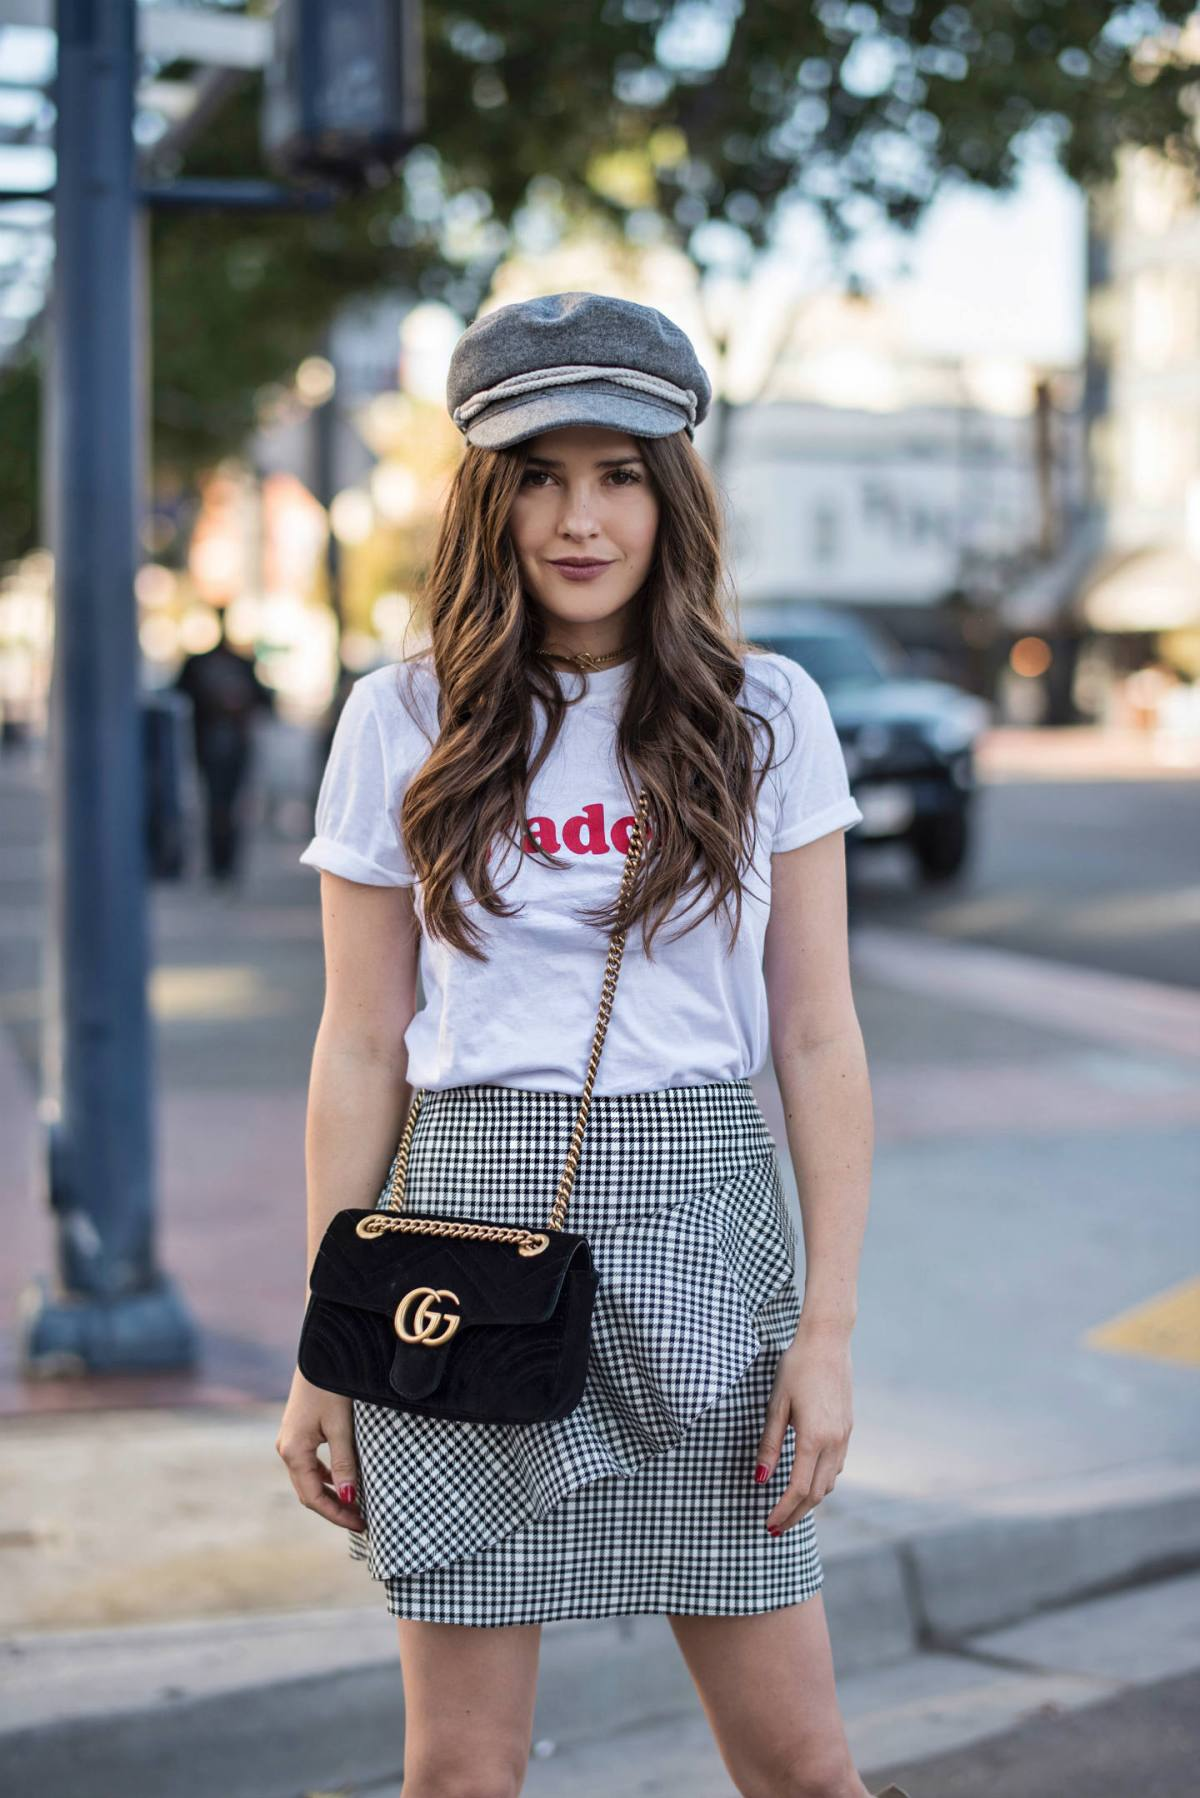 Girl wearing Parisian style outfit.